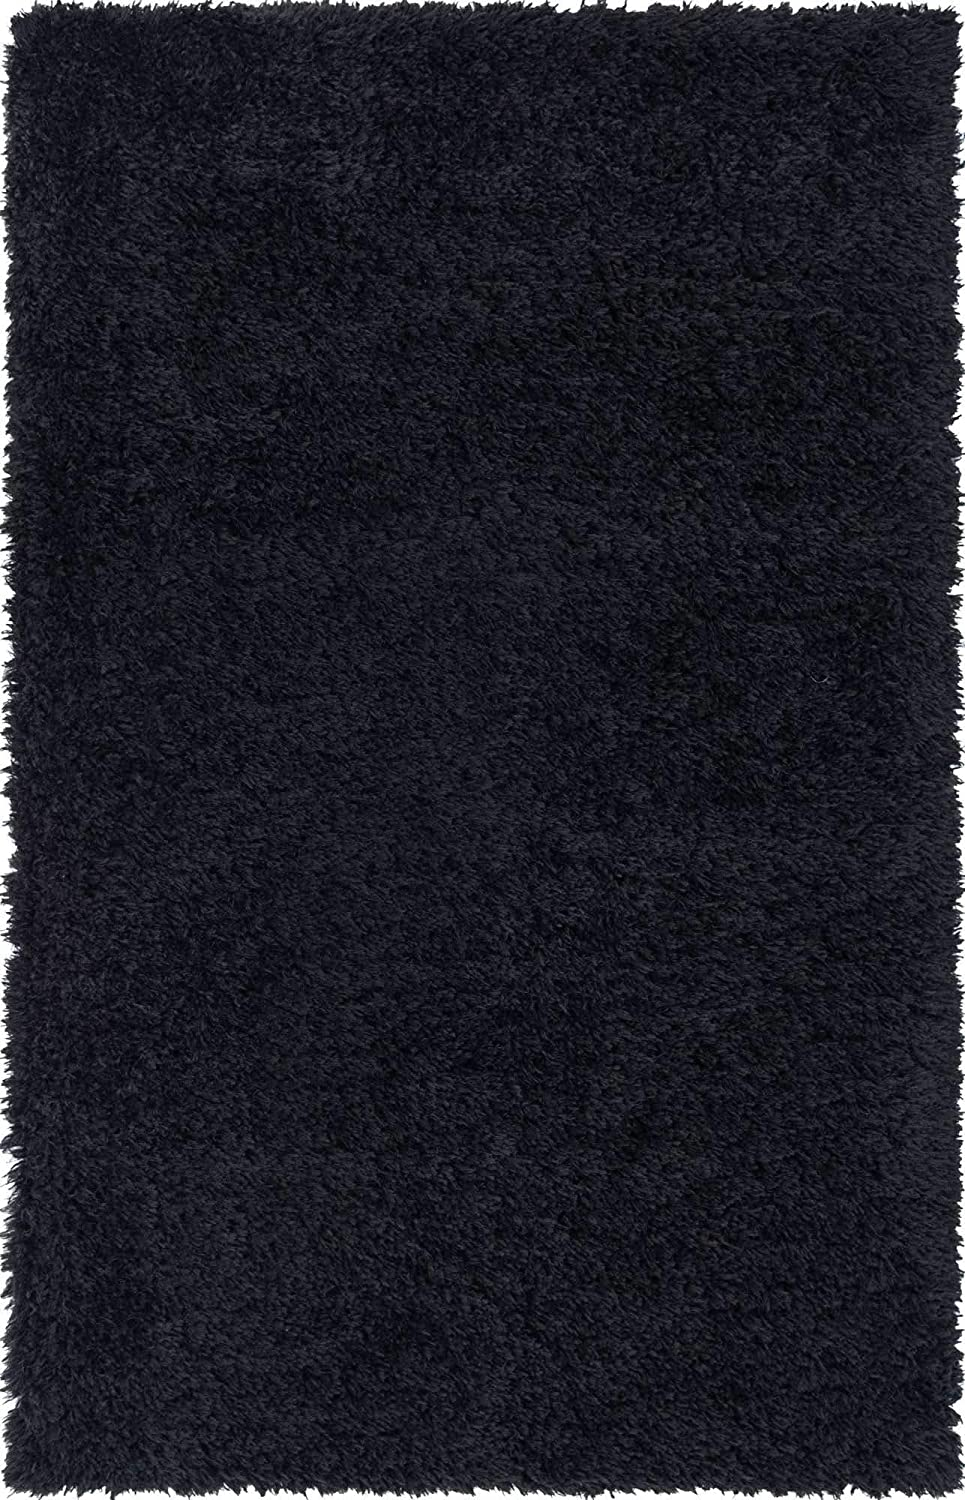 Infinity Collection Solid Shag Area Rug by Rugs.com – Black 8' x 11' High-Pile Plush Shag Rug Perfect for Living Rooms, Bedrooms, Dining Rooms and More